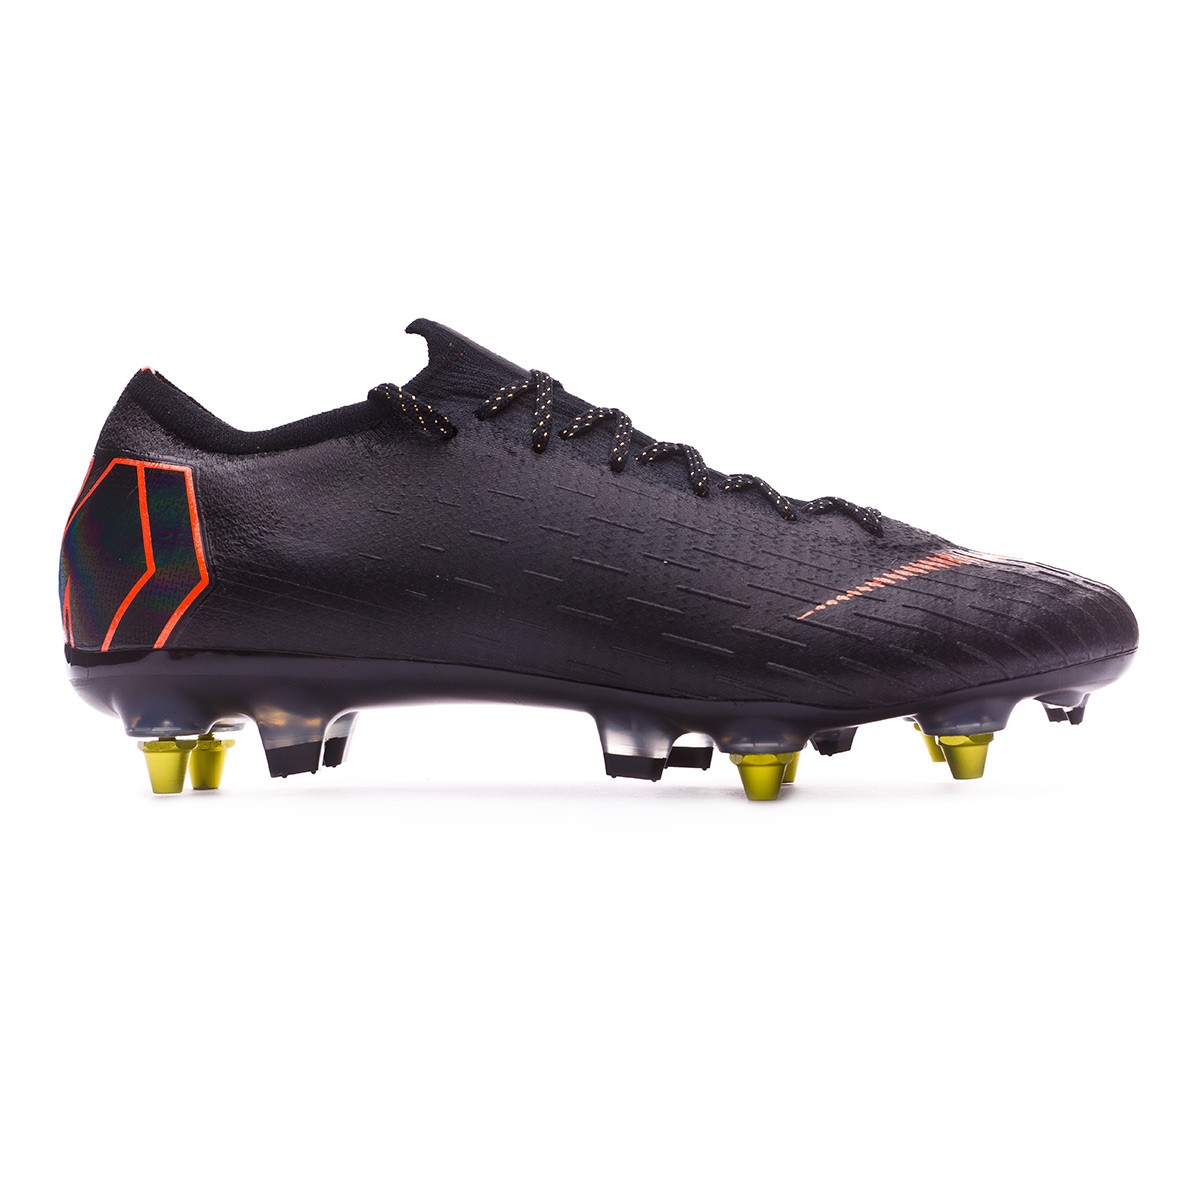 on sale 3d8cd f93a1 Football Boots Nike Mercurial Vapor XII Elite SG-Pro Anti-Clog Black-Total  orange-White - Football store Fútbol Emotion